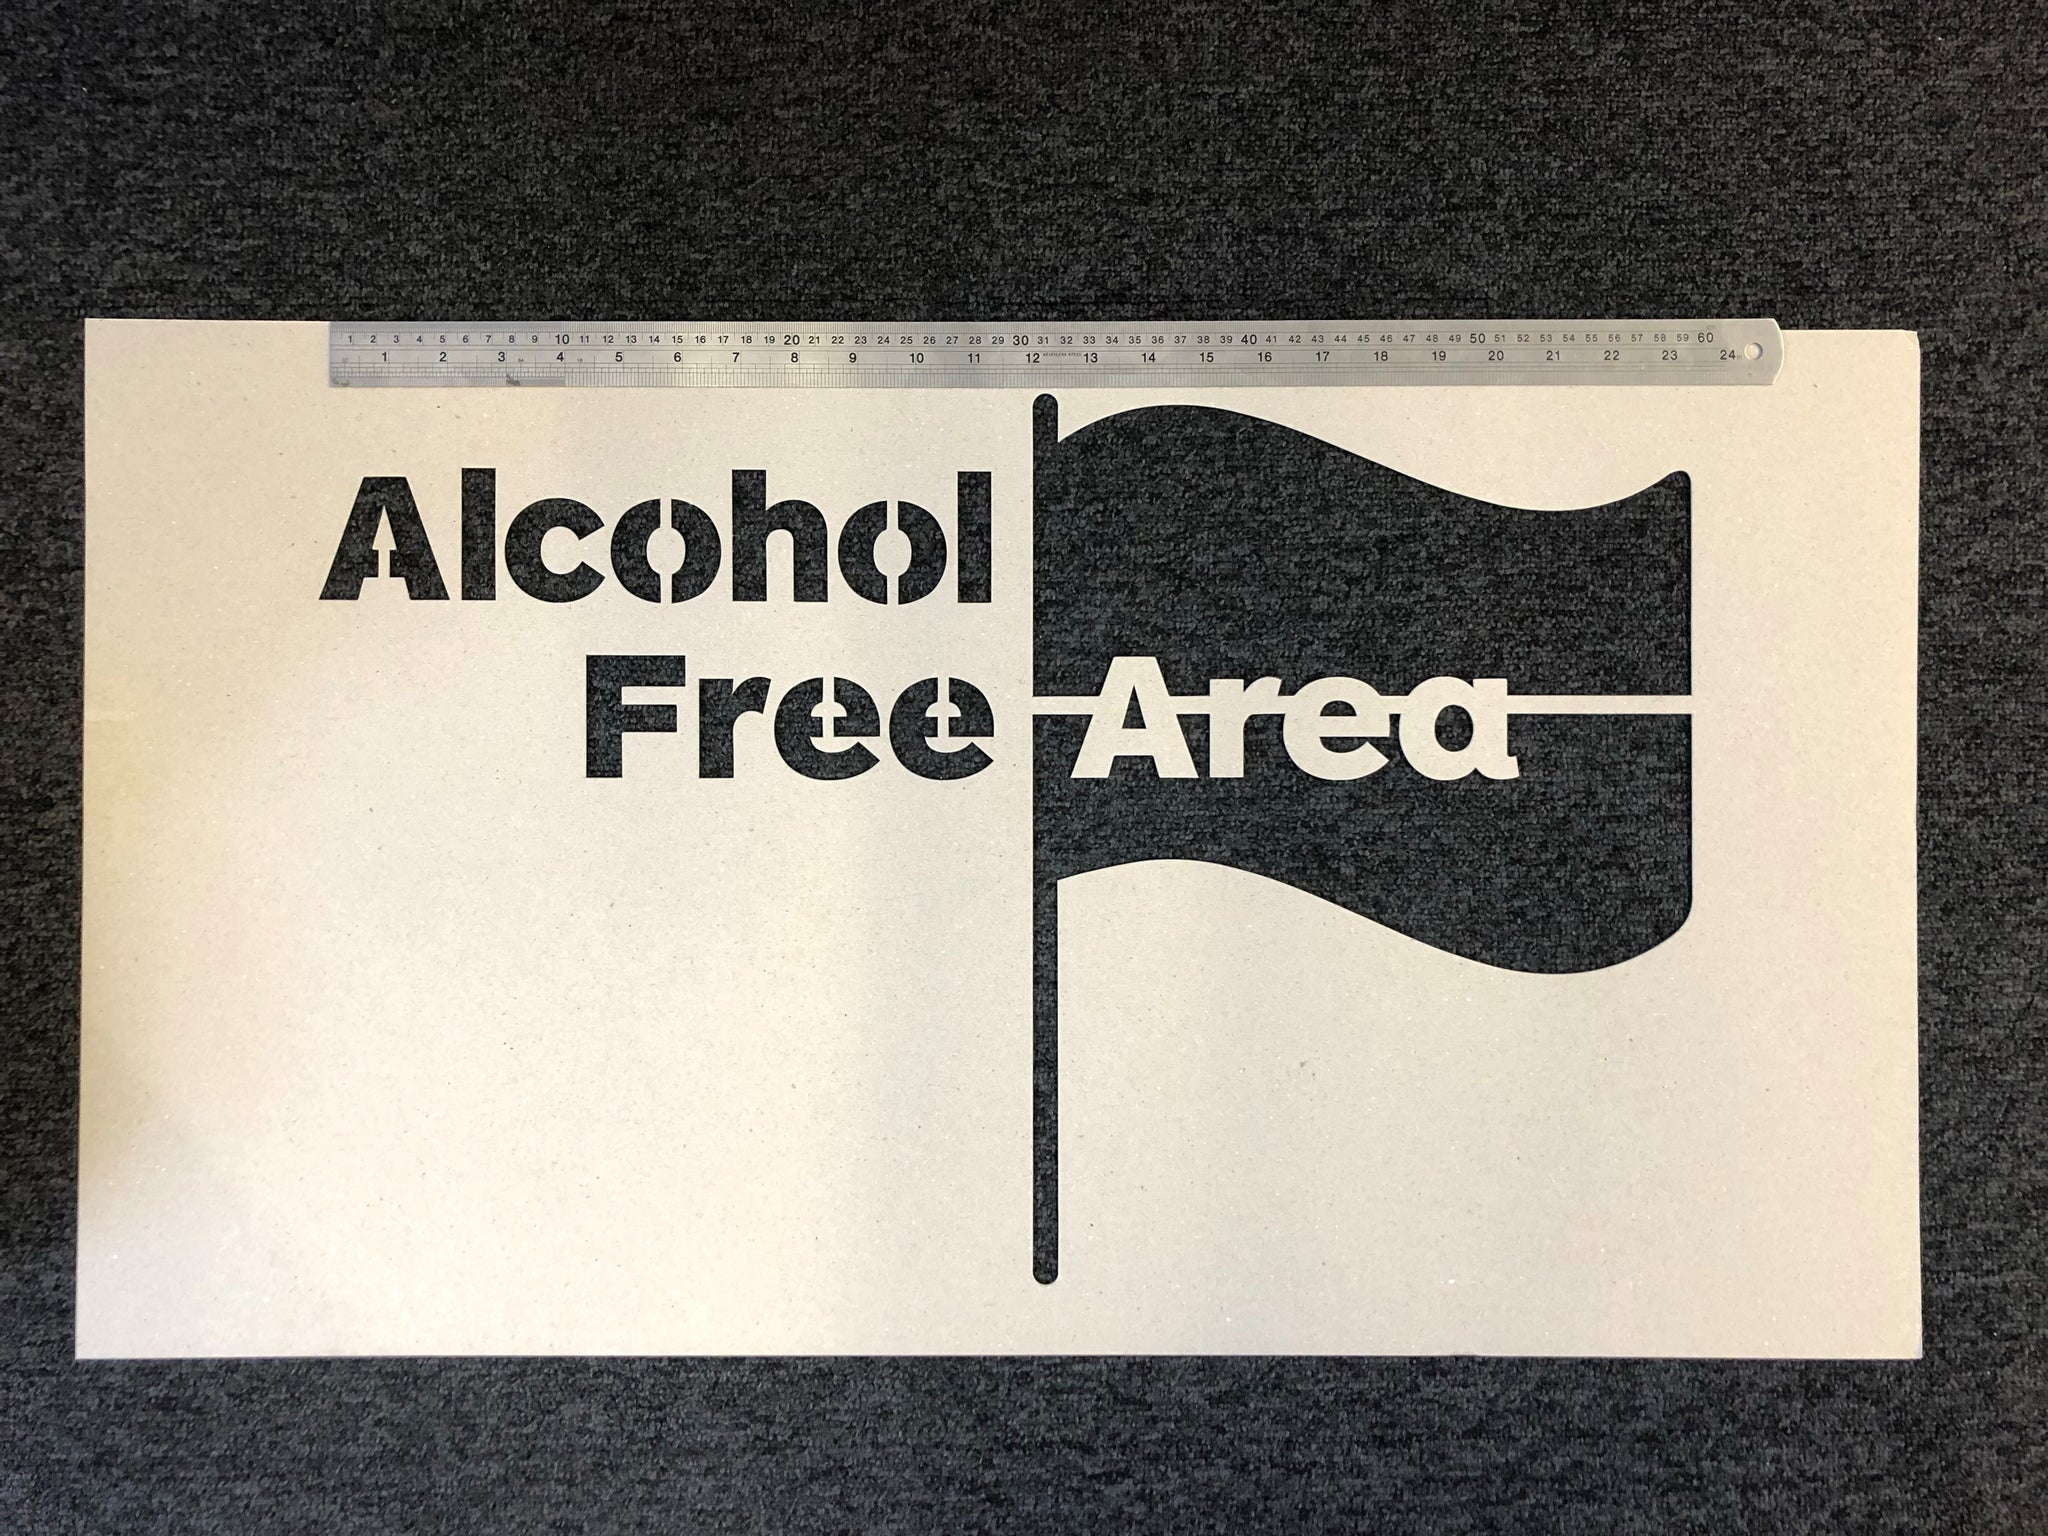 Alcohol Free Area Stencil - Large